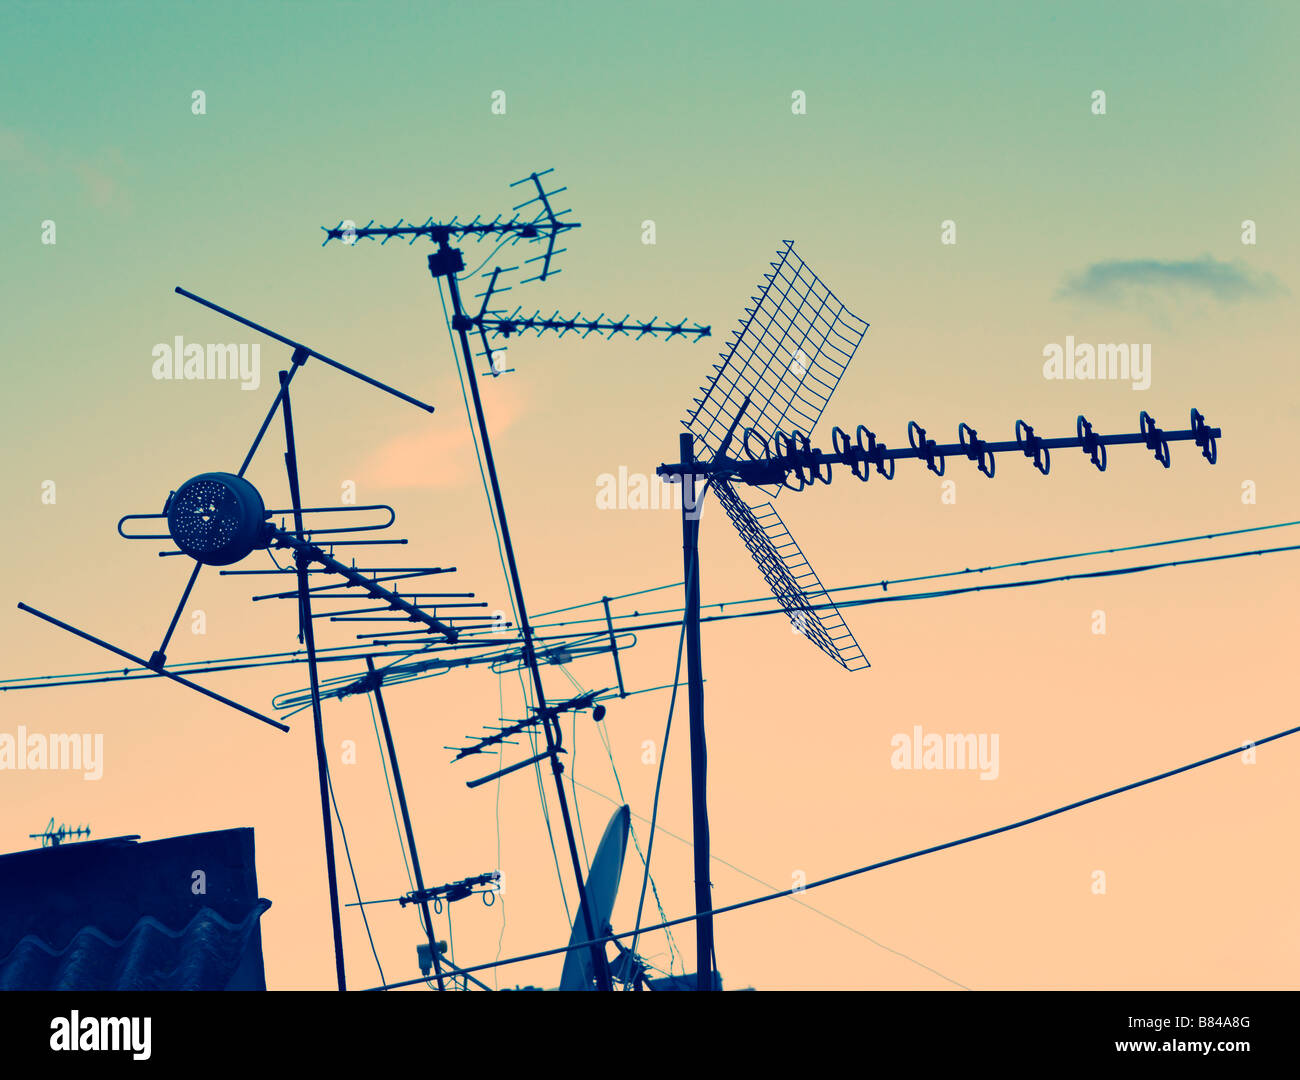 TV aerials - Stock Image